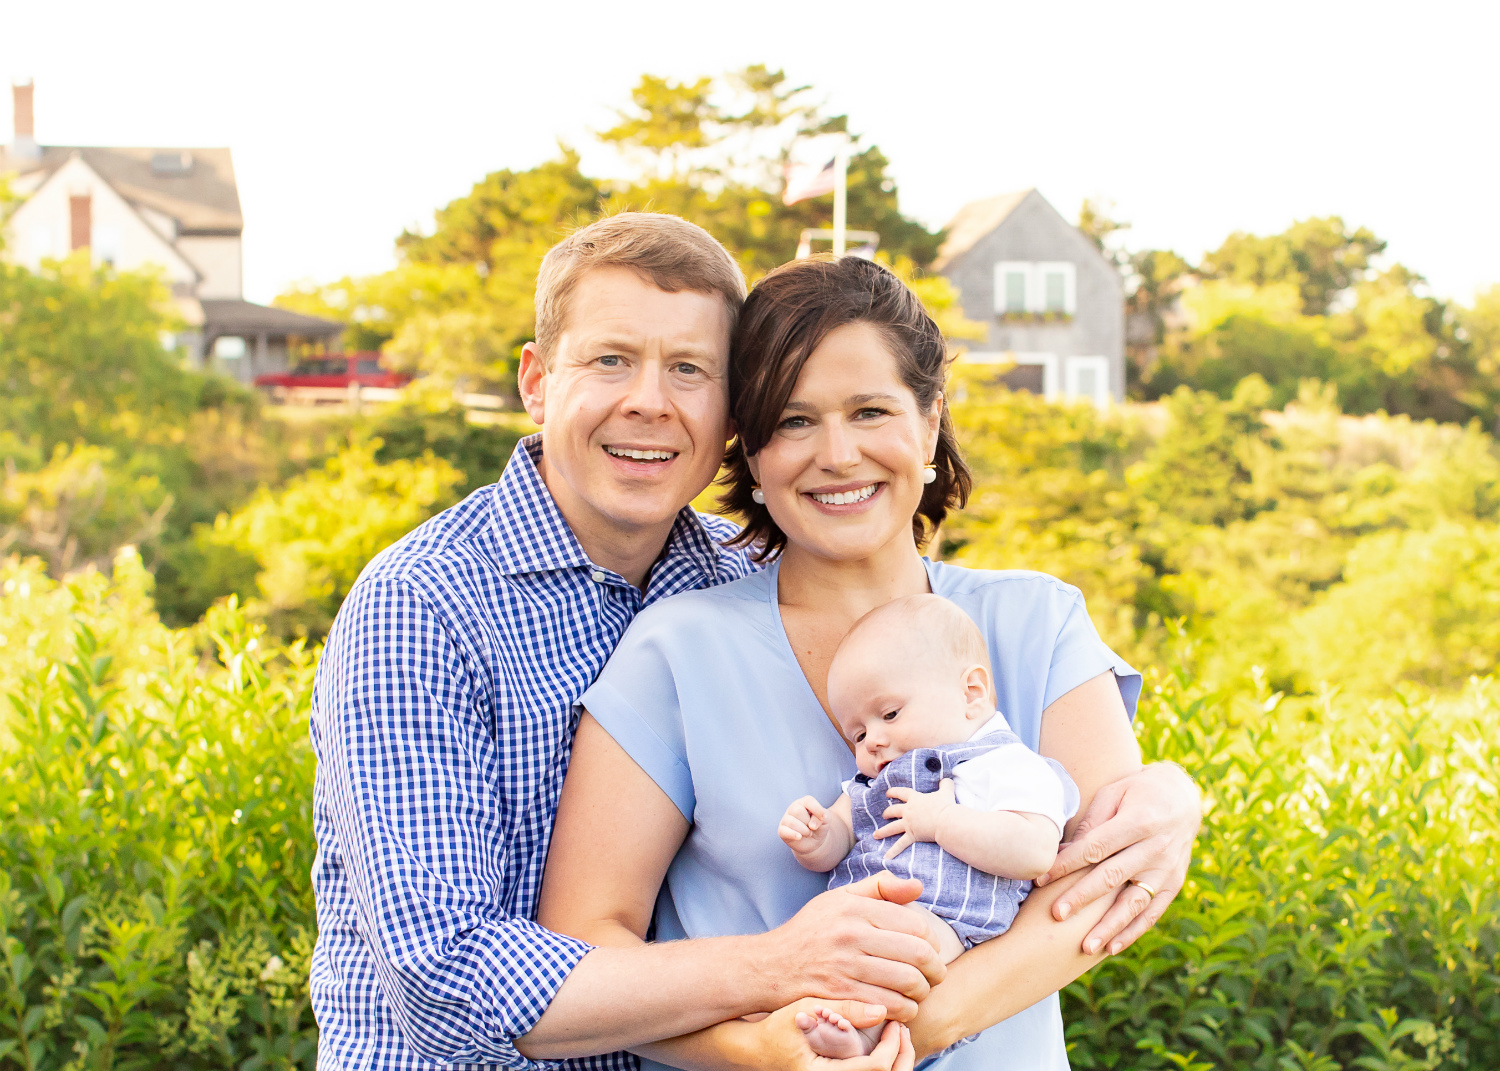 2018.07.08 Claire McClintock Family Session (high res)-8604-2 1500.jpg